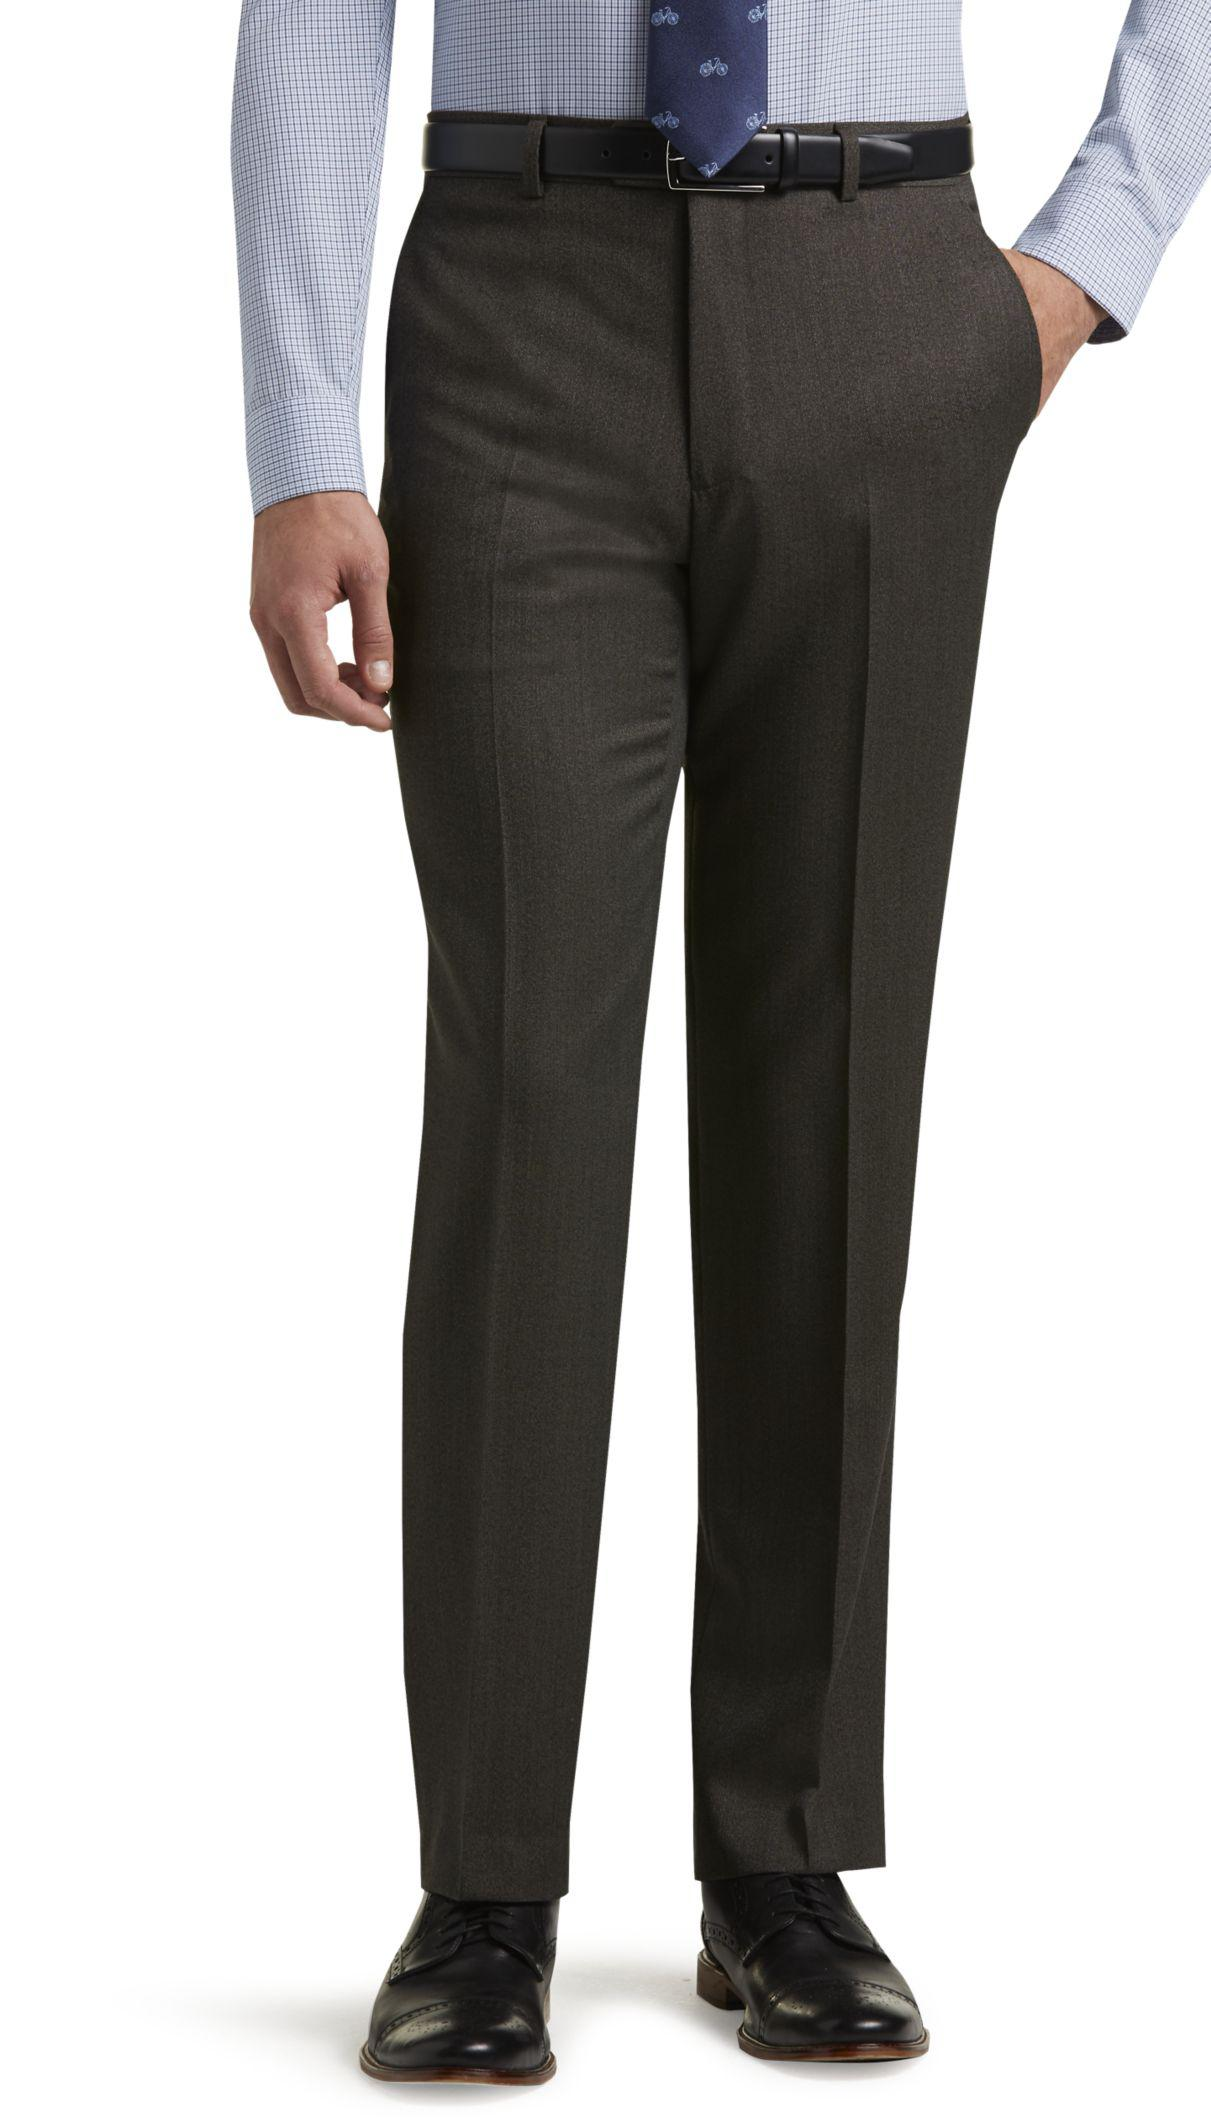 Men's dress pants in neutral colors are great for the workplace and will easily match your favorite men's shirts and loafers or Oxfords. Well-fitted chinos and khakis are .